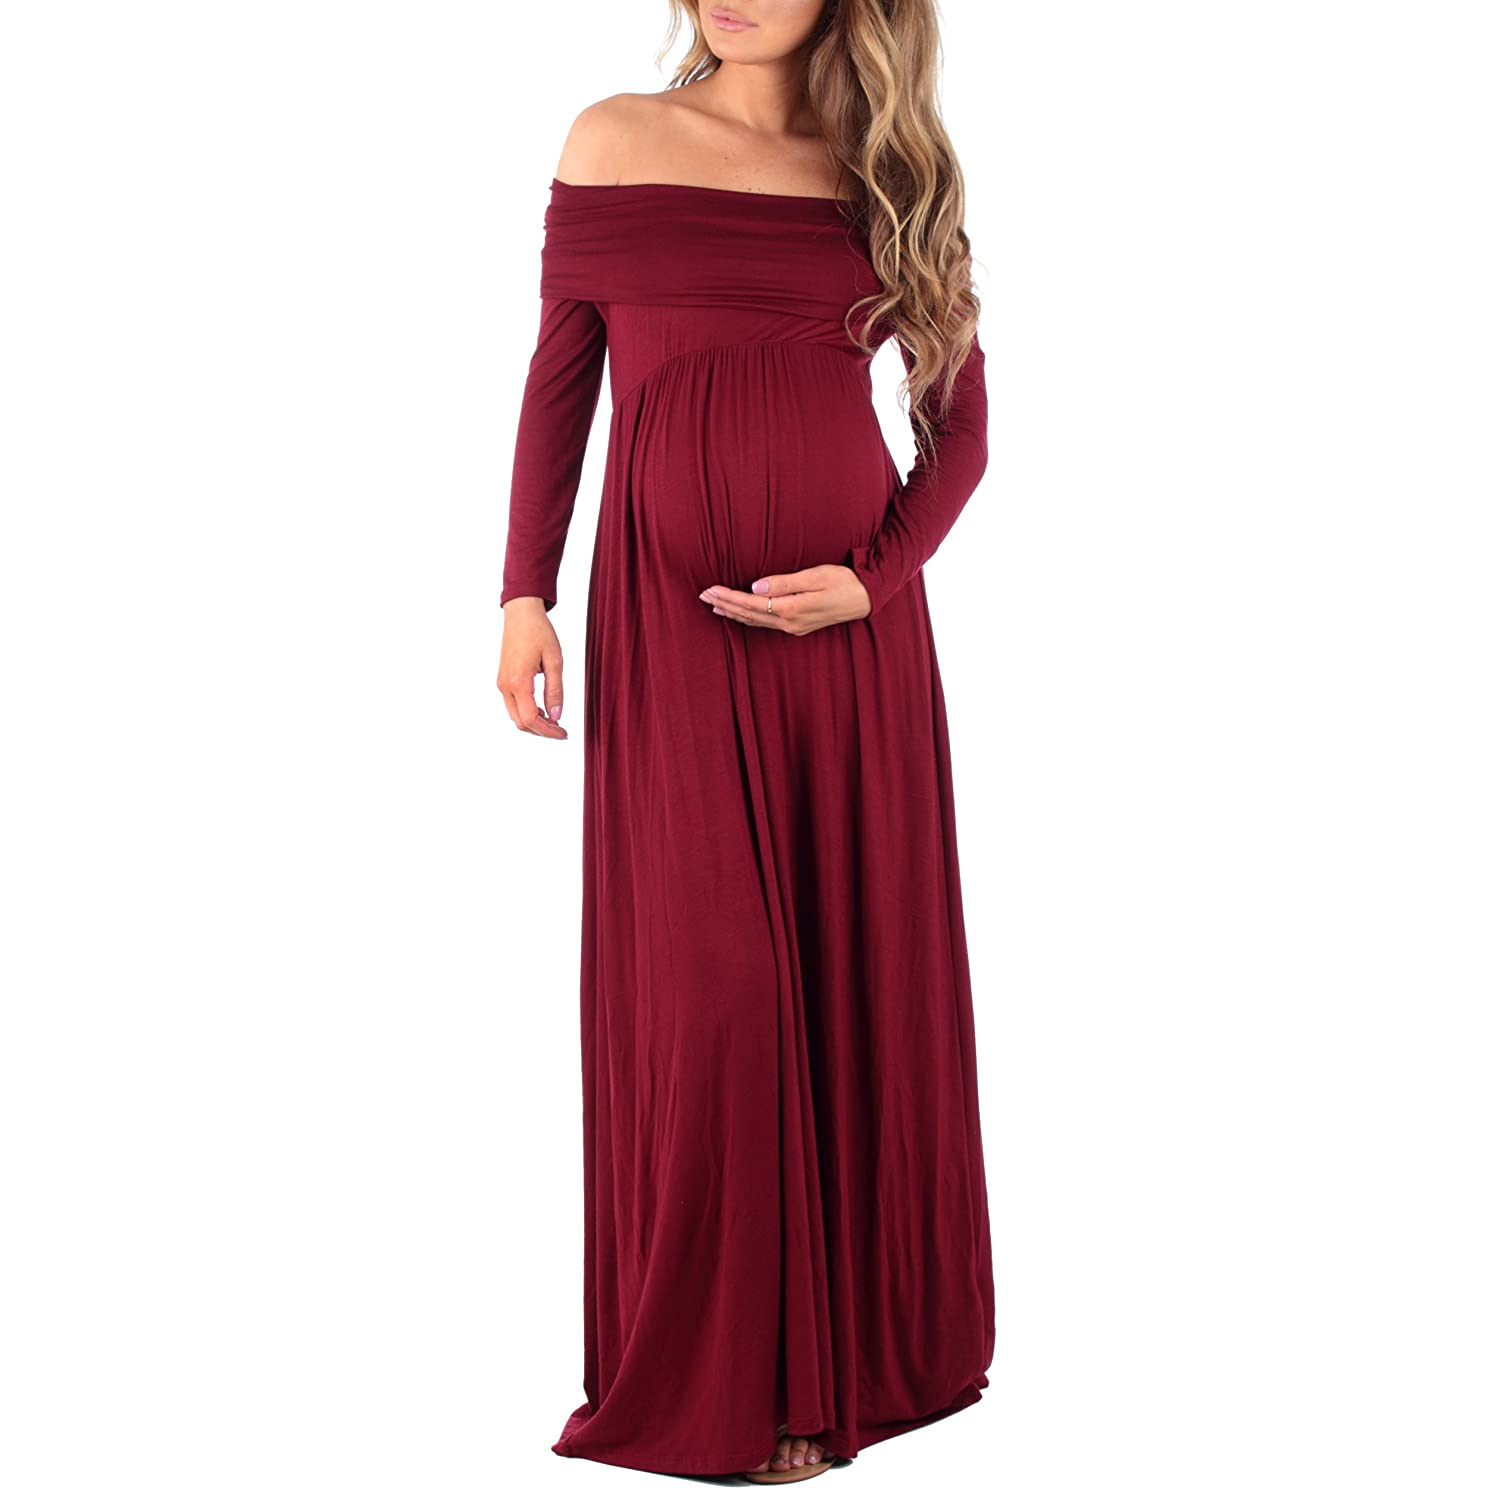 Maternity dresses amazon best sellers ombrellifo Choice Image